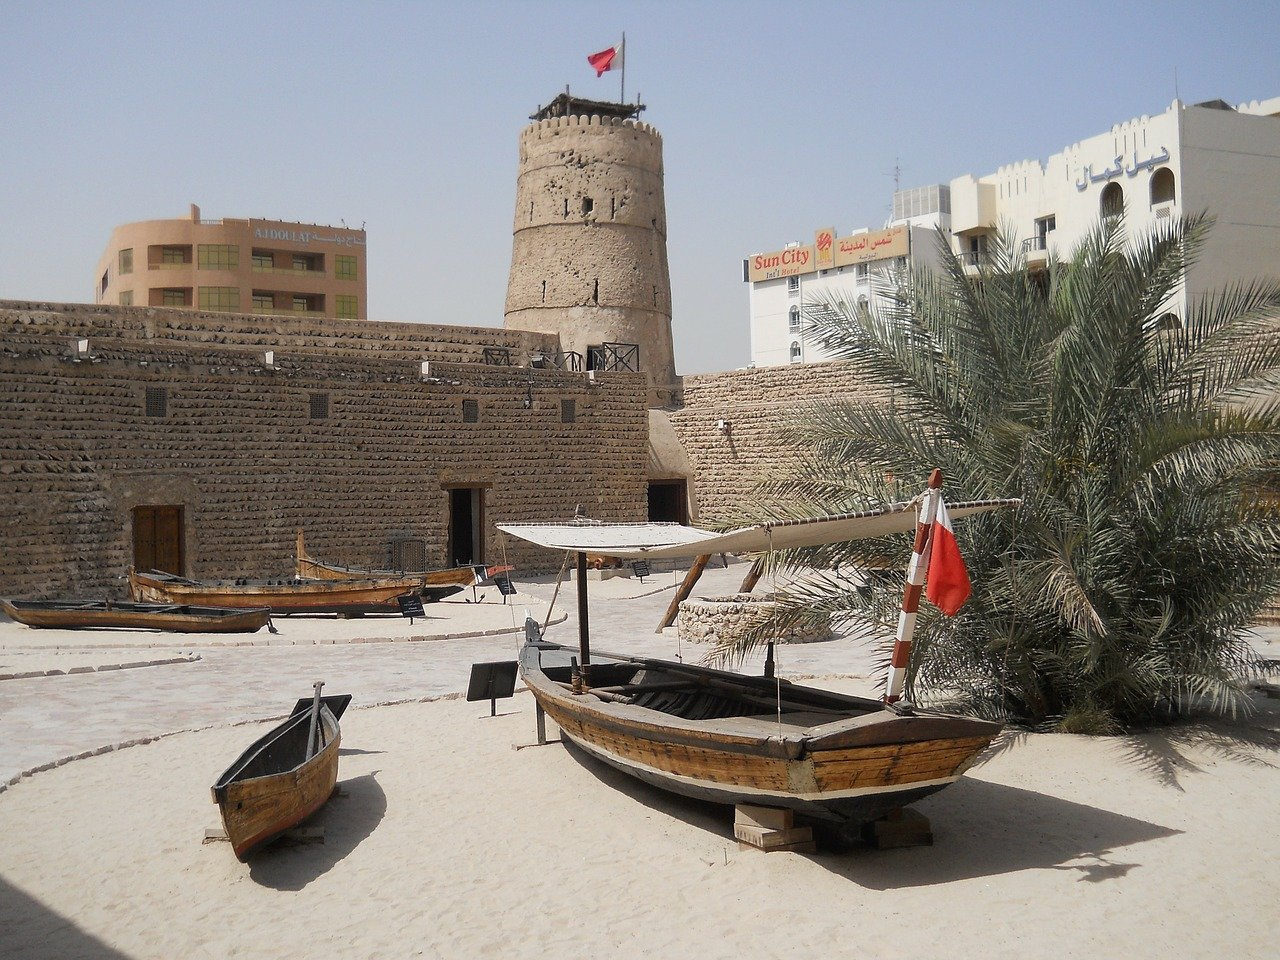 Al Fahidi Fort - Dubai Museum is one of the cheap things to do in Dubai. Read this guide to free things to do in Dubai now and make the most of your trip to Dubai.